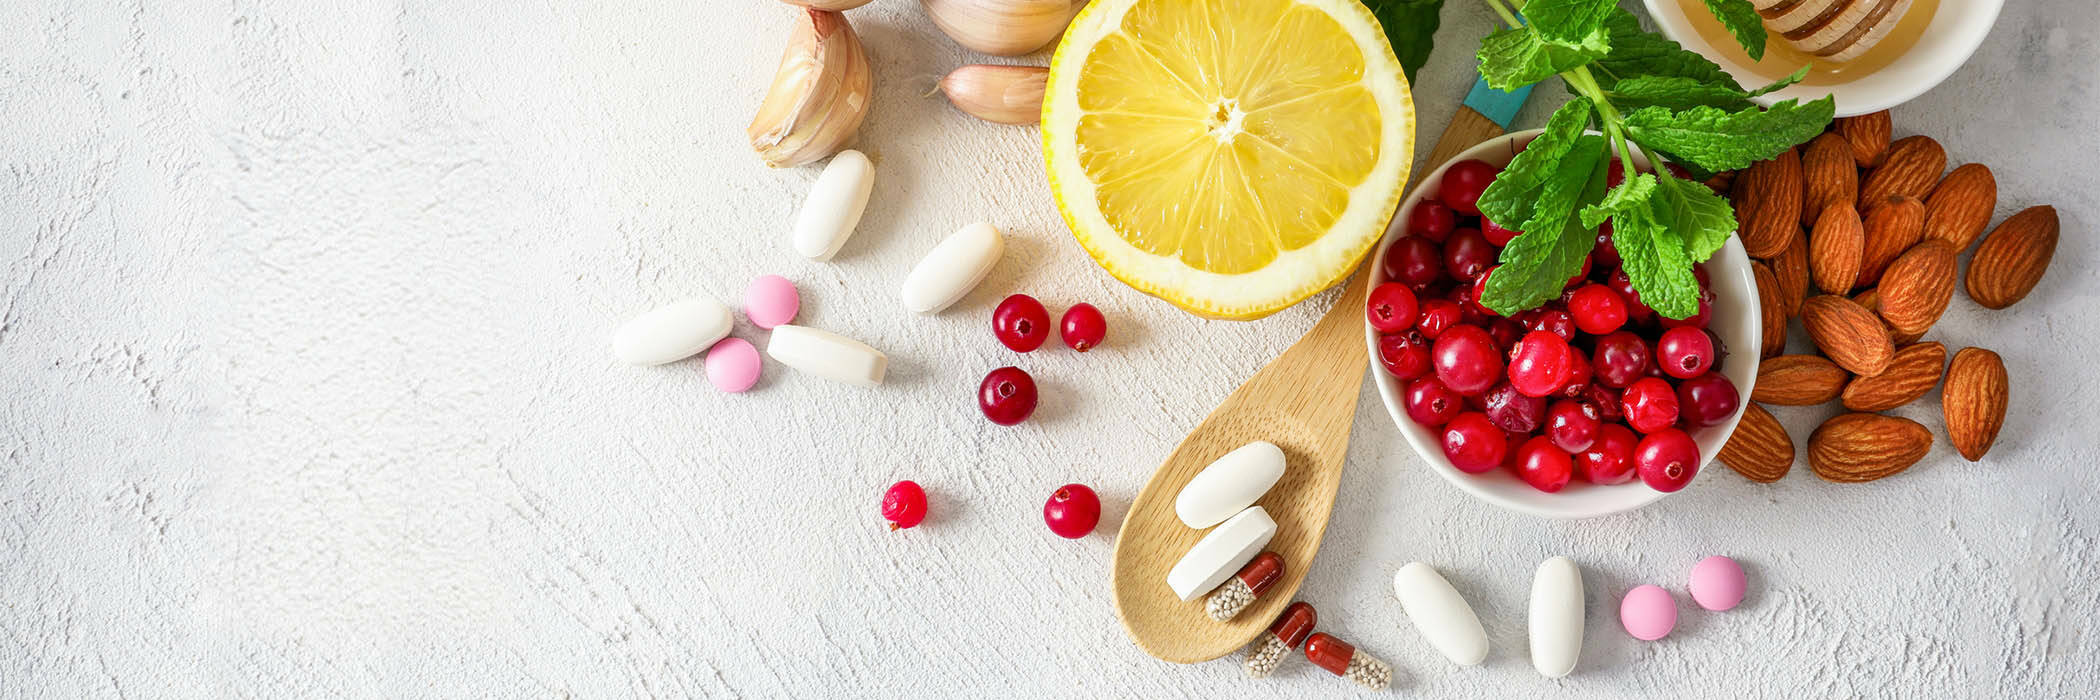 Various healthy natural products for immunity boosting and cold remedies on white background.